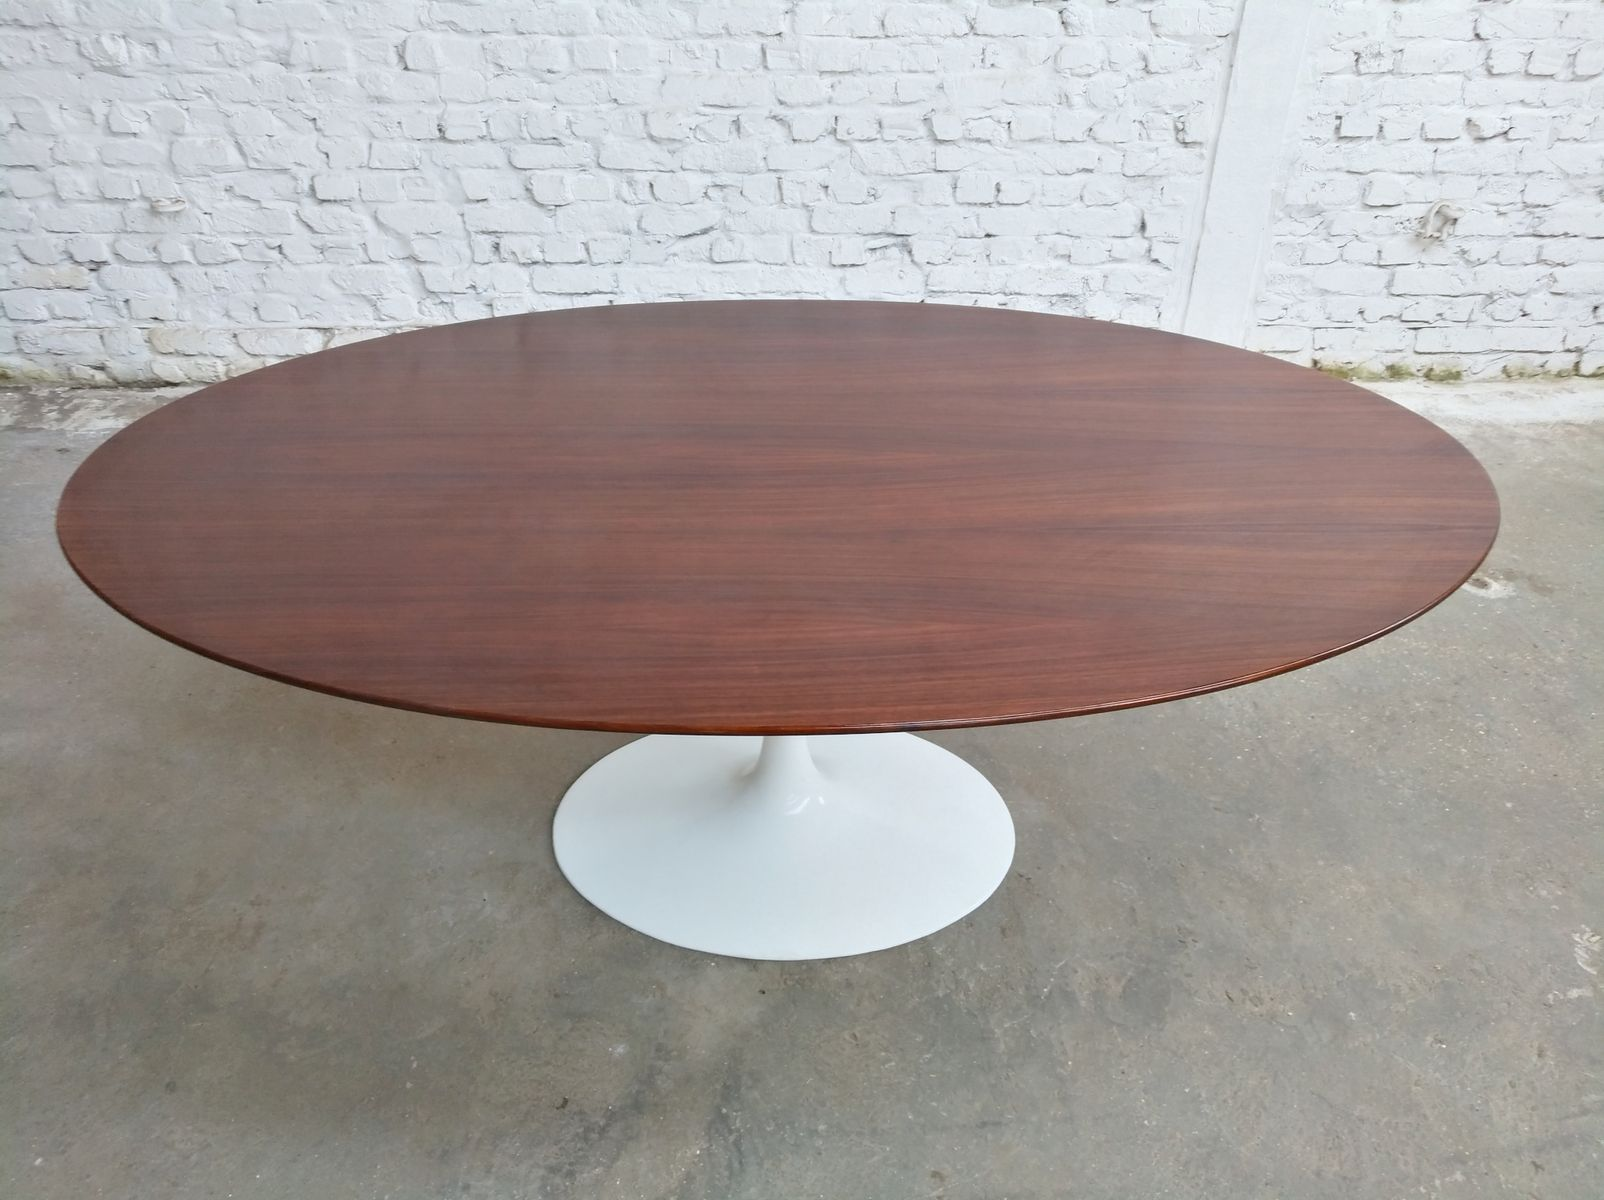 Oval Rosewood Dining Table by Eero Saarinen for Knoll  : oval rosewood dining table by eero saarinen for knoll international 1960s 5 from www.pamono.co.uk size 1604 x 1200 jpeg 152kB